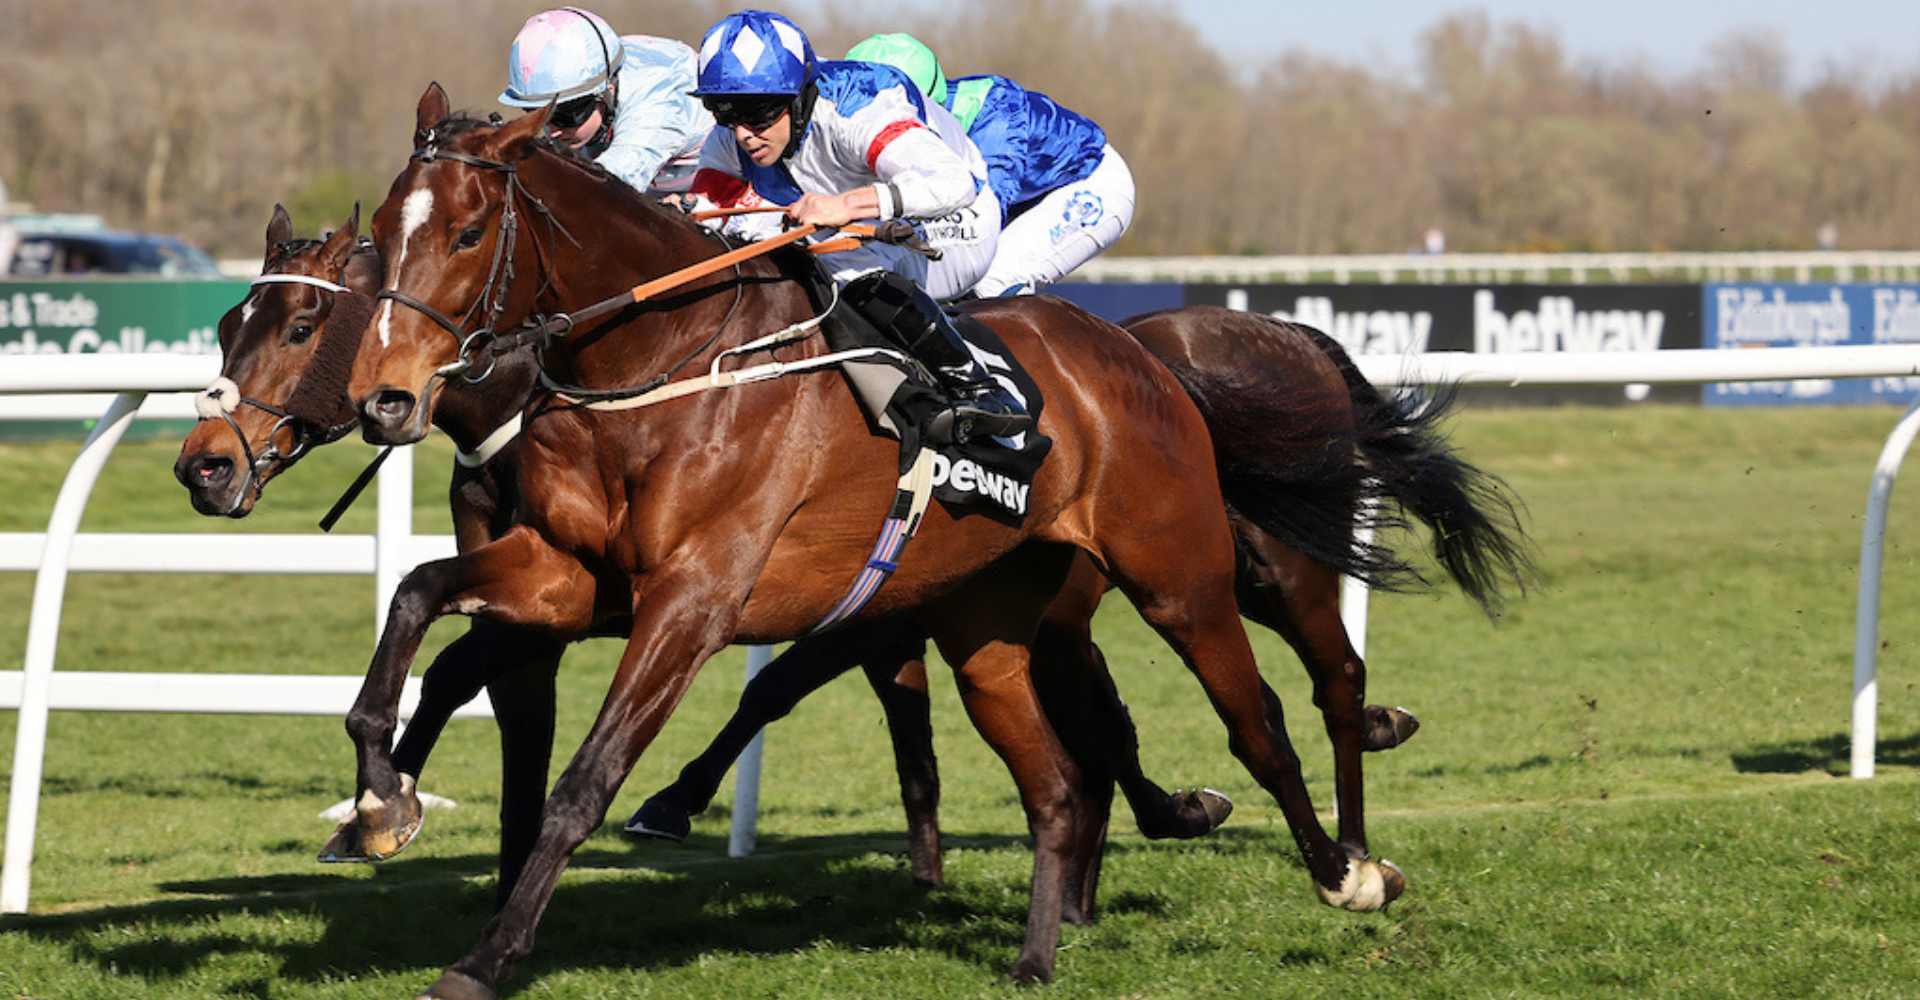 MARK JOHNSTON took Musselburgh by storm